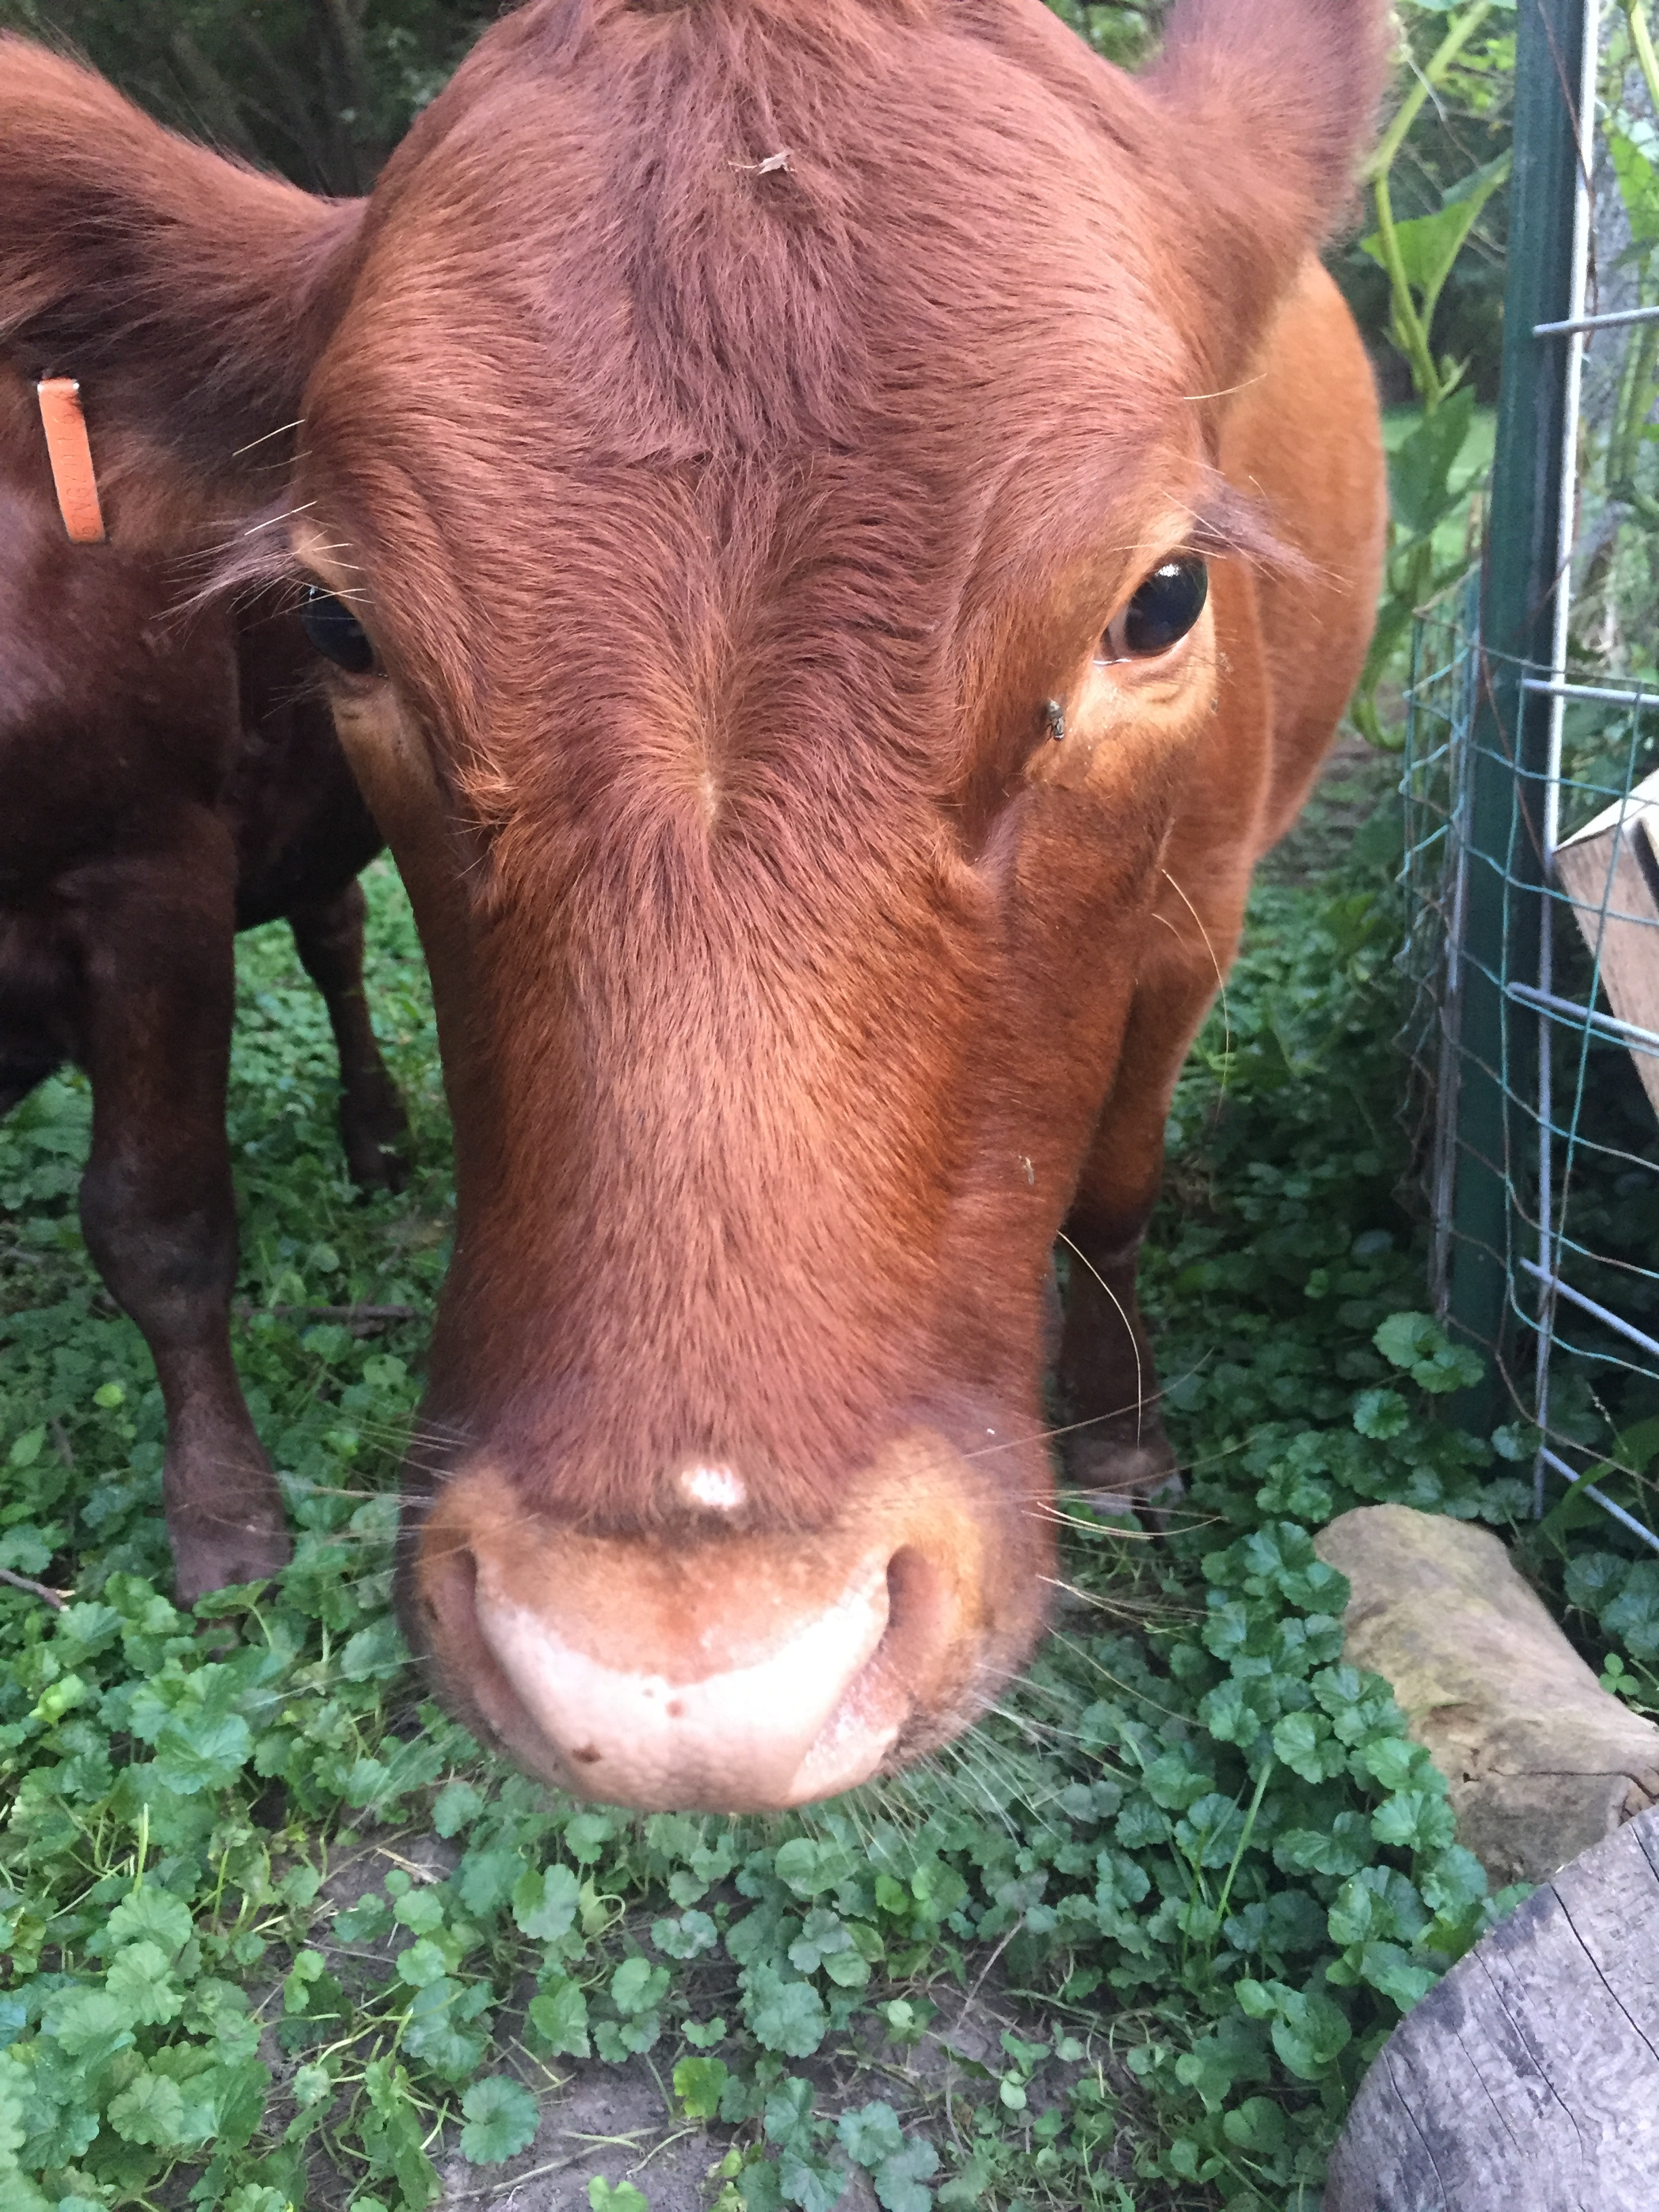 This week, - as it came time to milk Joy, our cow,I found myself grumbling at the prospect. Having to go outside into   the cold, milk,before milking cleaning/sanitizing, after milking cleaning/sanitizing,and then deciding that to make with the milk. Ugh!